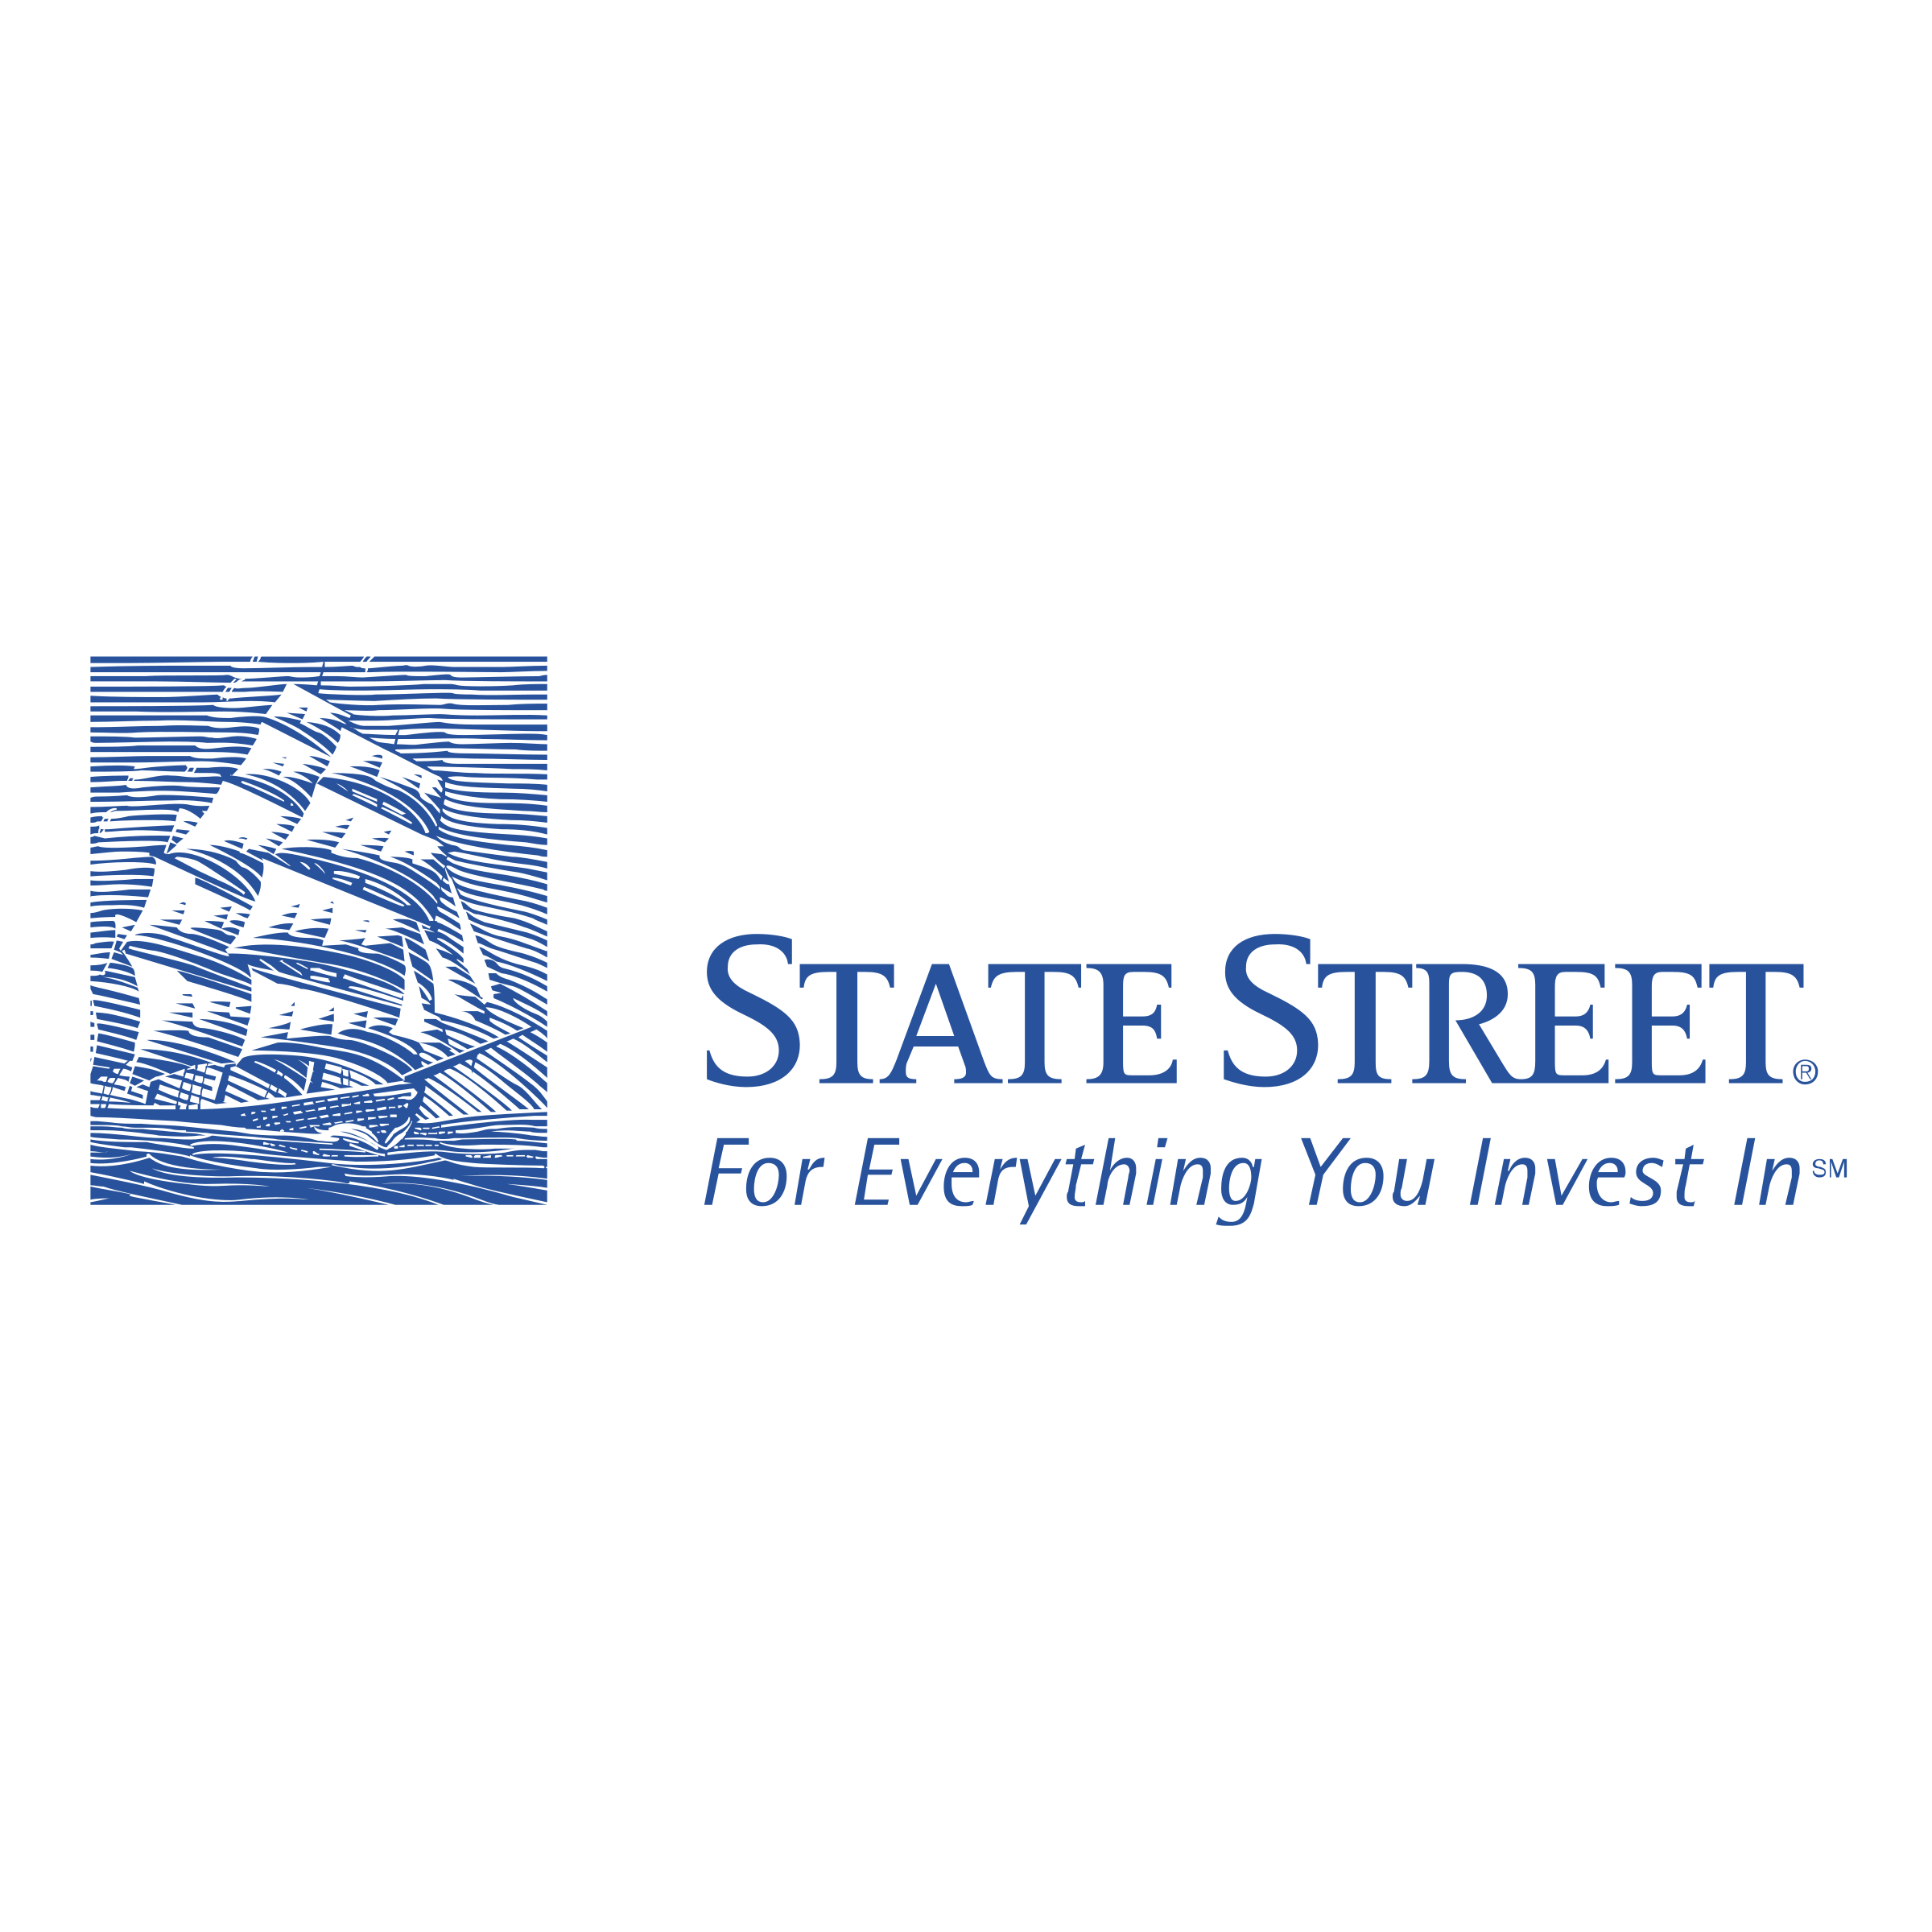 State street logo png. Transparent svg vector freebie